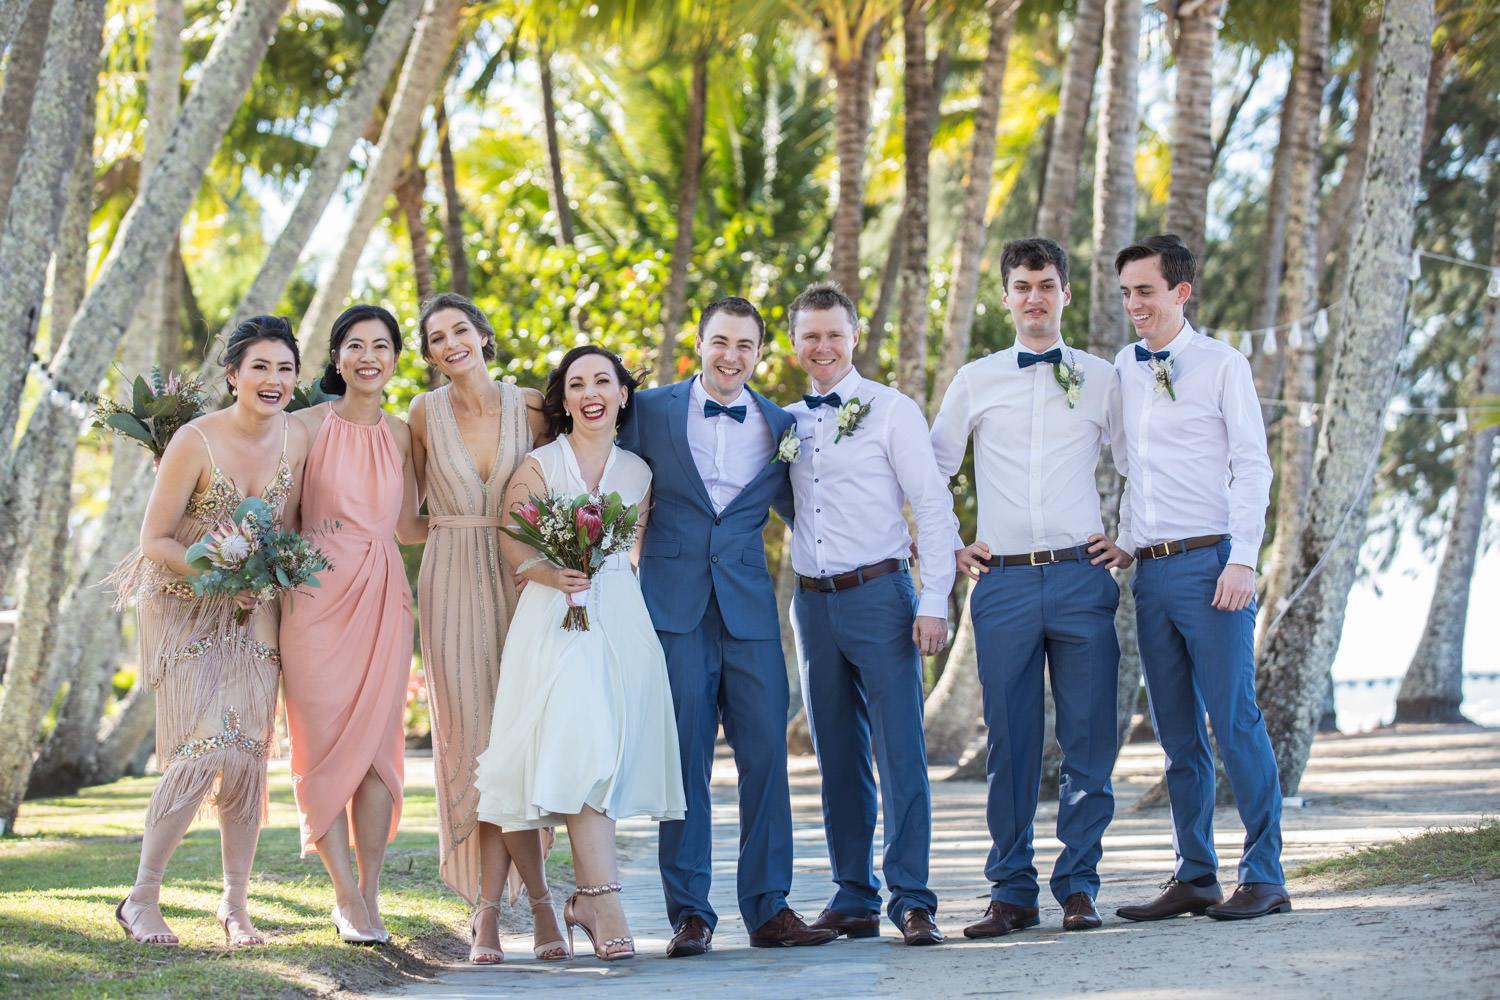 23 Port Douglas Wedding Photographer Catseye Productions Rathmell blog 044A6823